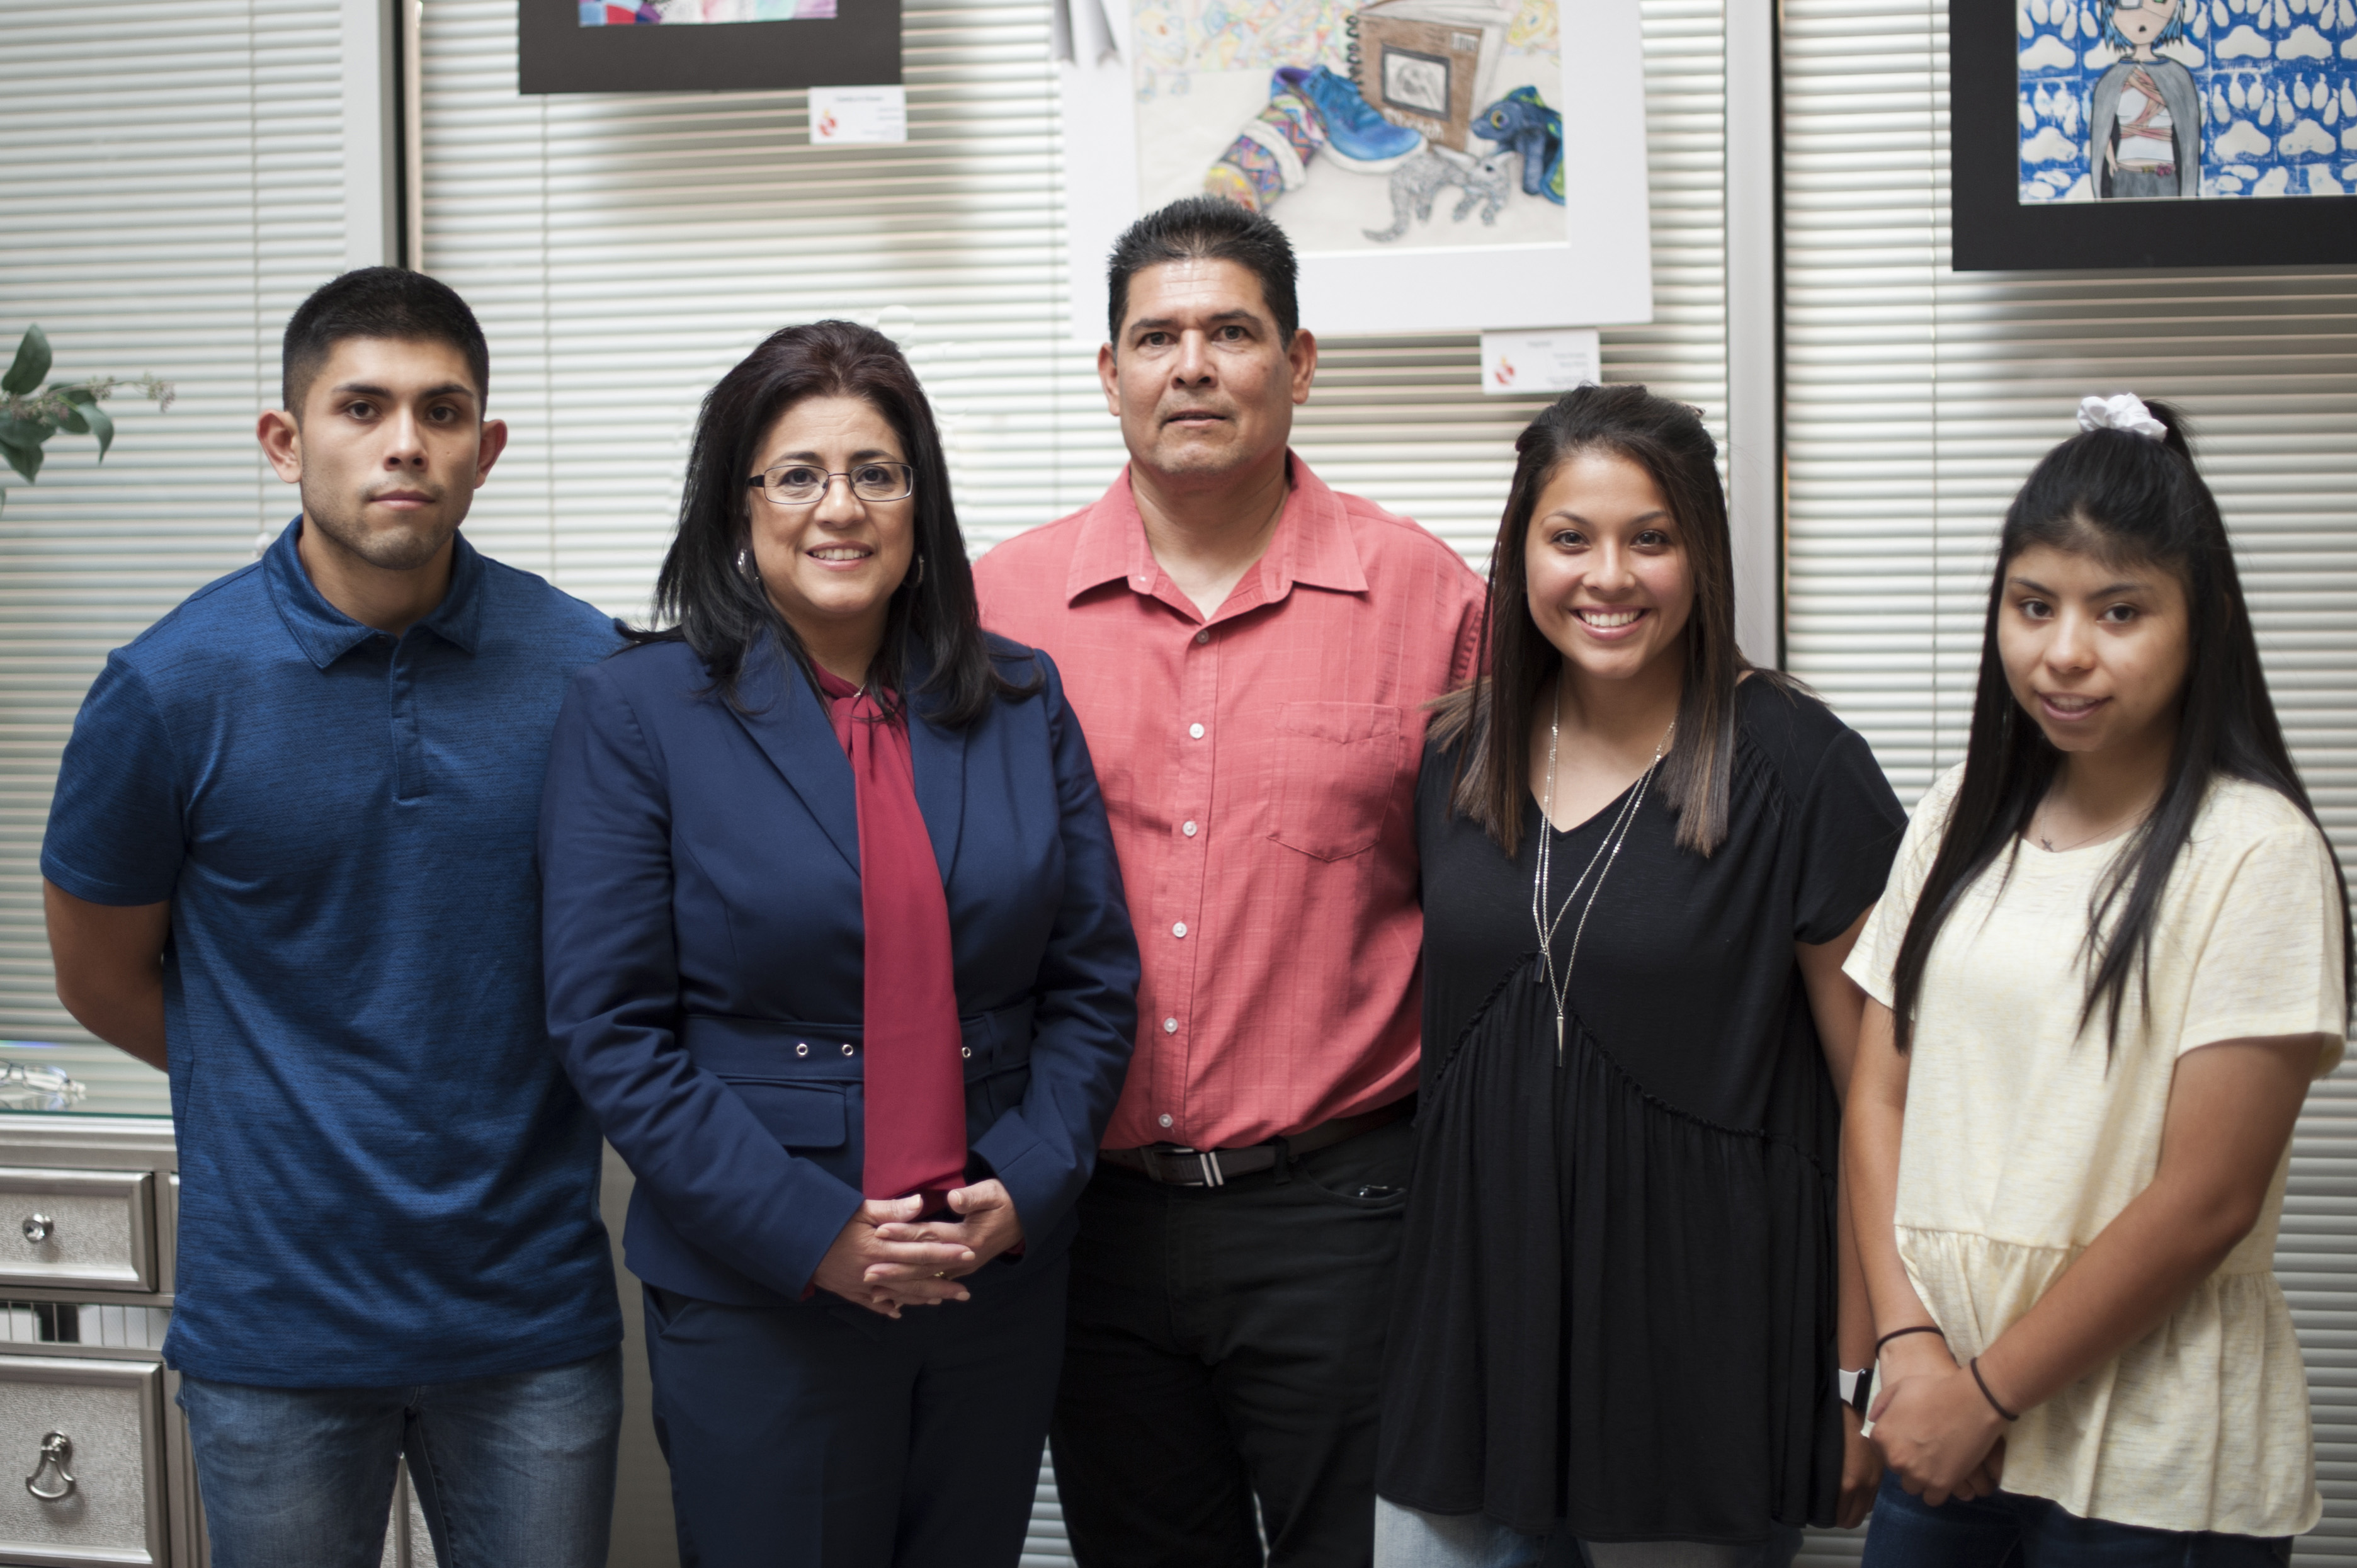 Gloria Martinez, husband, son and 2 daughters